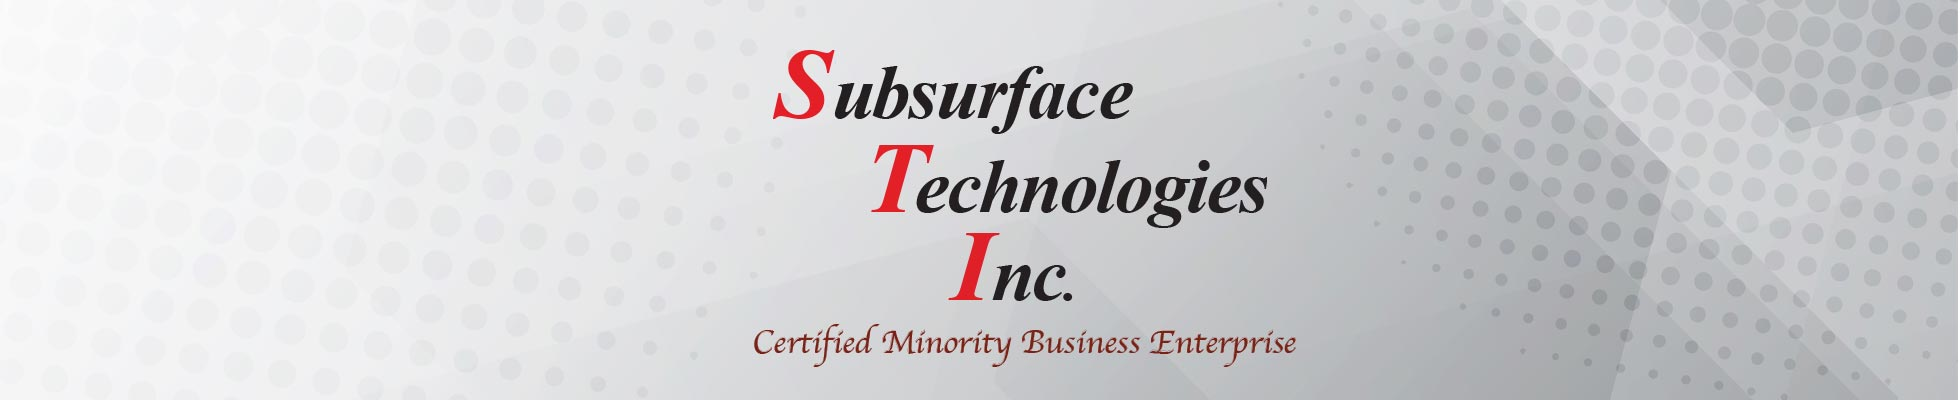 Subsurface Technologies storage tank installations